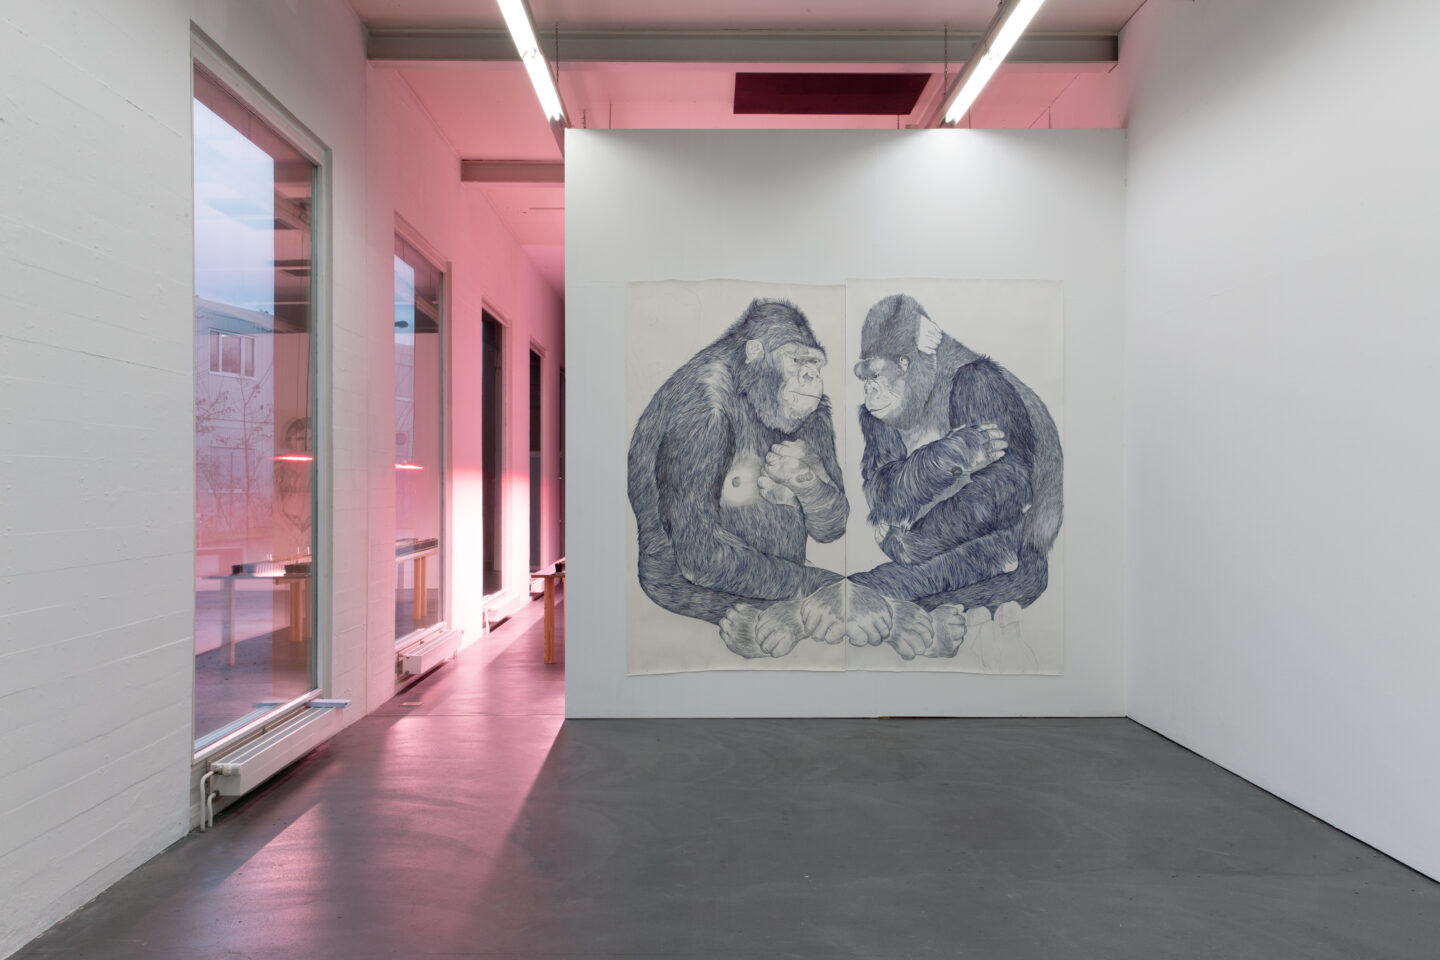 Exhibition View Marlene McCarty Soloshow «Into the Weeds; view on GROUP 10.3 (Sorry.Baby.), 2008» at Kunsthaus Baselland, Muttenz, 2020 / Photo: Gina Folly / Courtesy: the artist